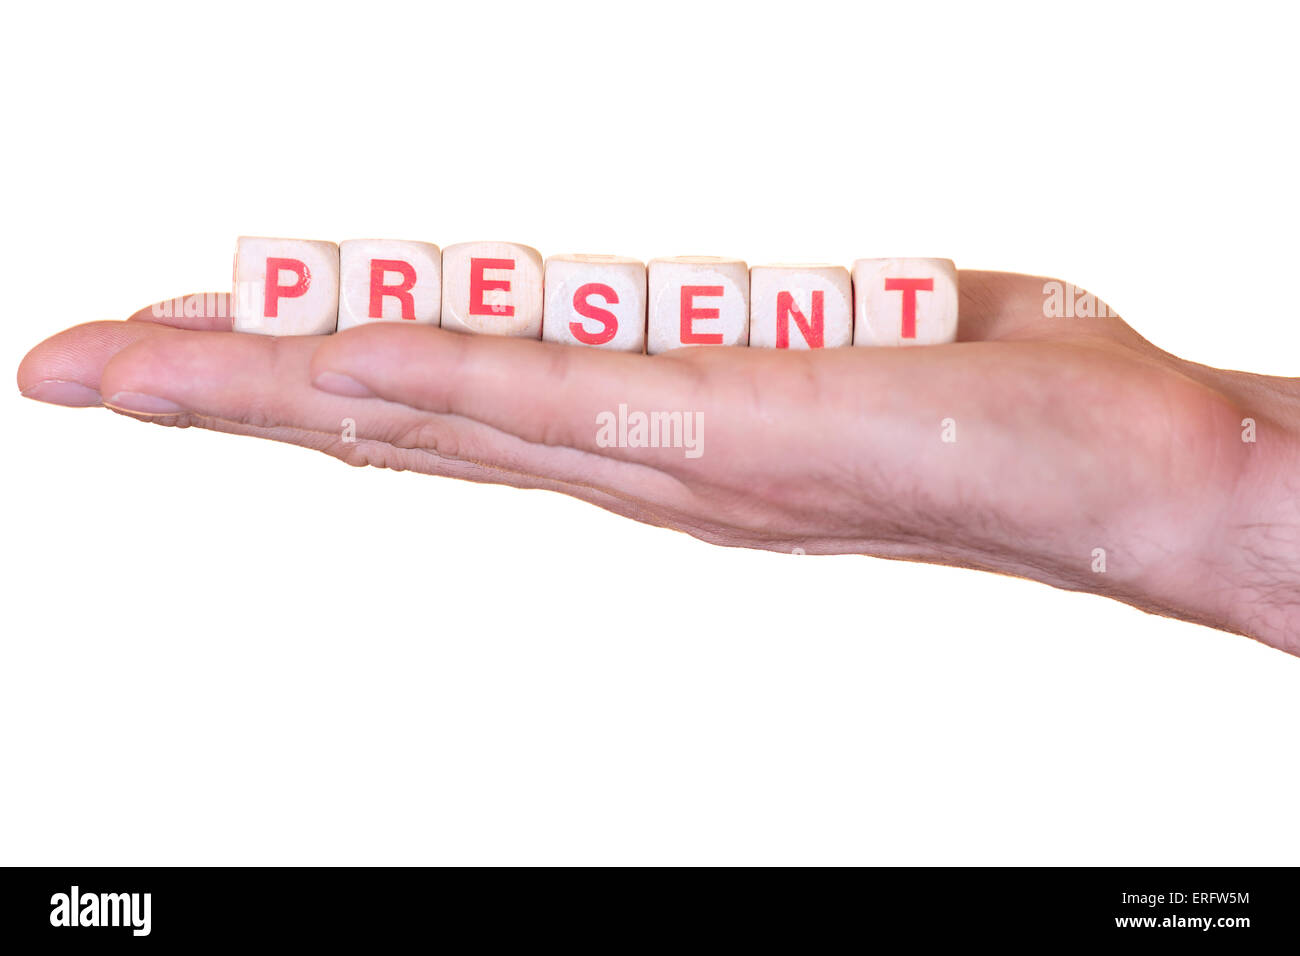 The word present written with wooden dice on the he palm of the hand. Isolated on white background - Stock Image